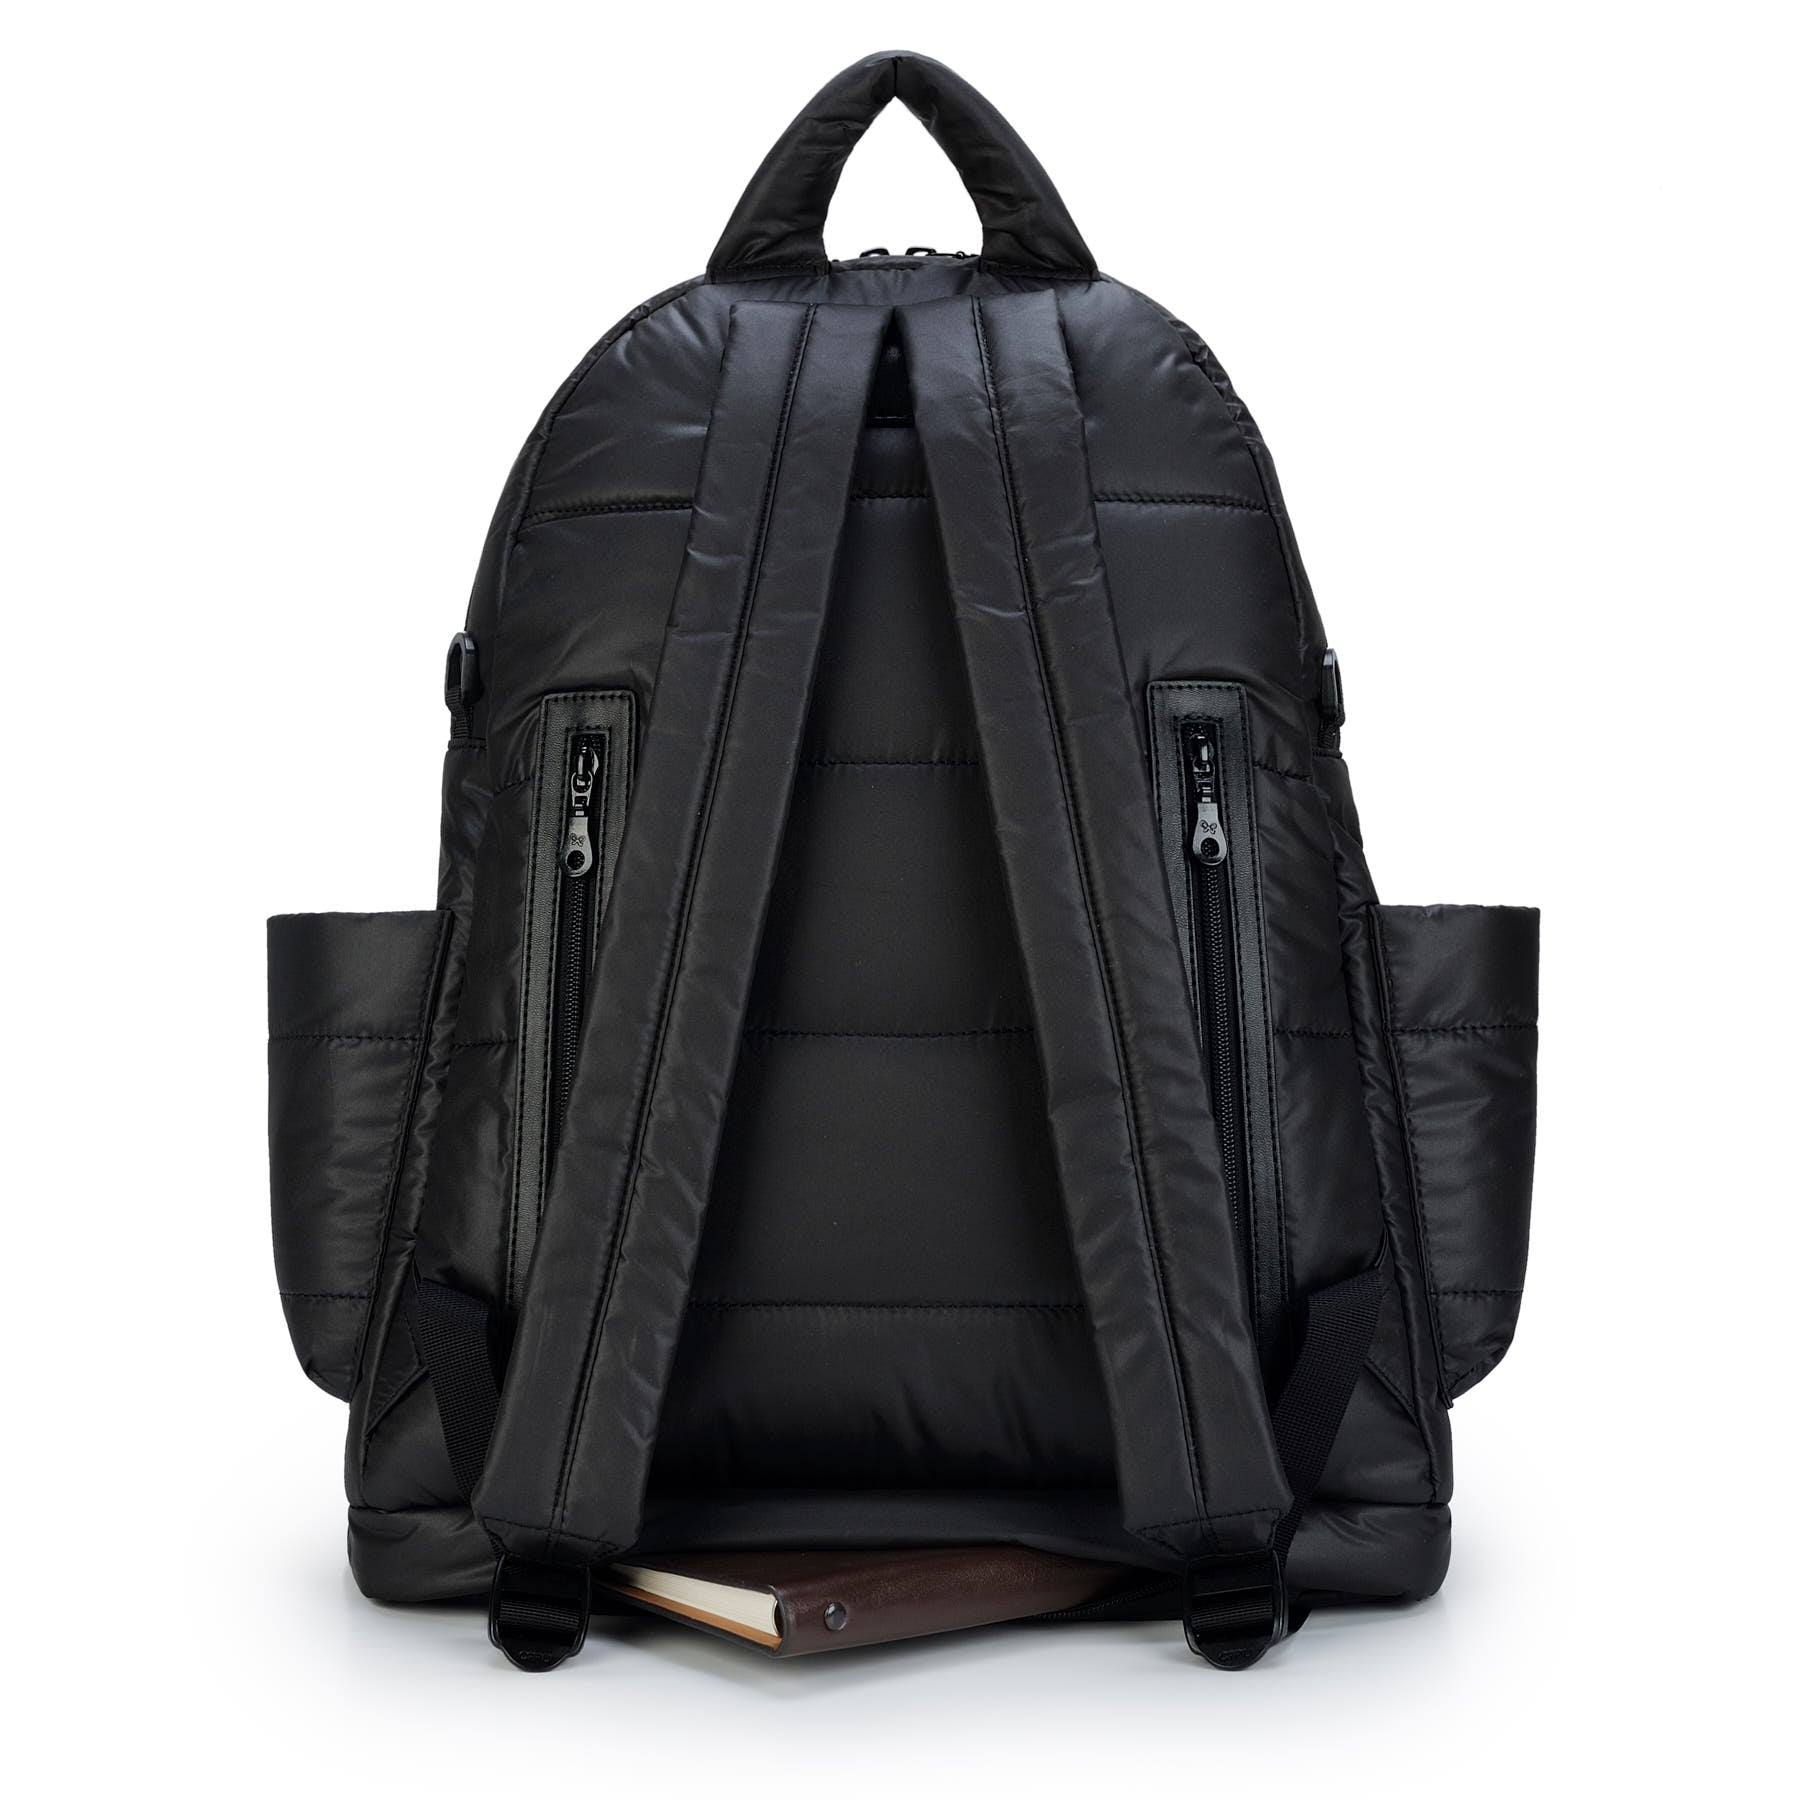 CiPU - Airy L Backpack - So Black